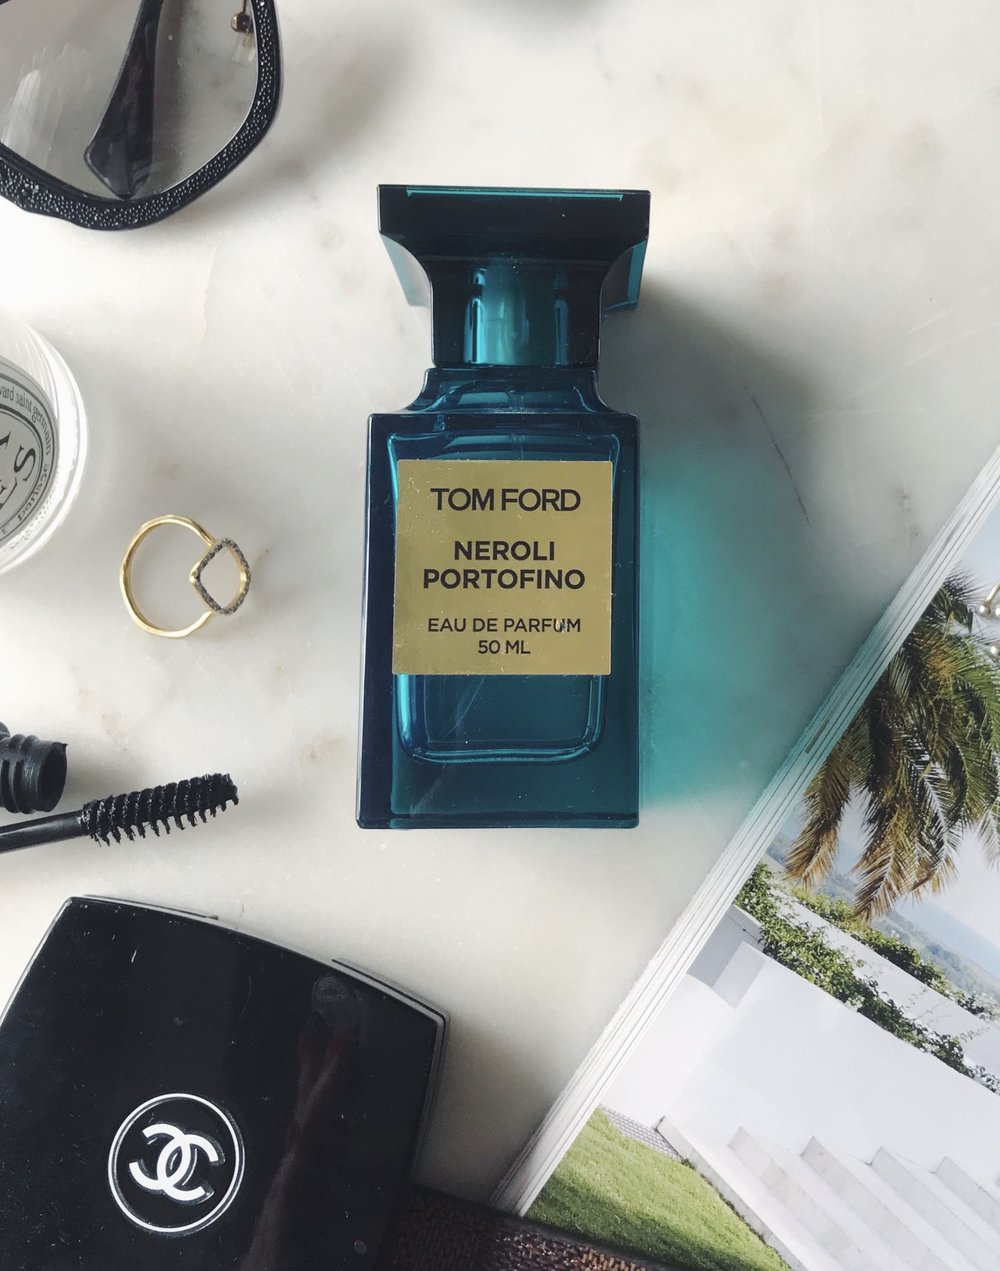 Neroli Portofino Tom Ford Private Blend The Creative Larder